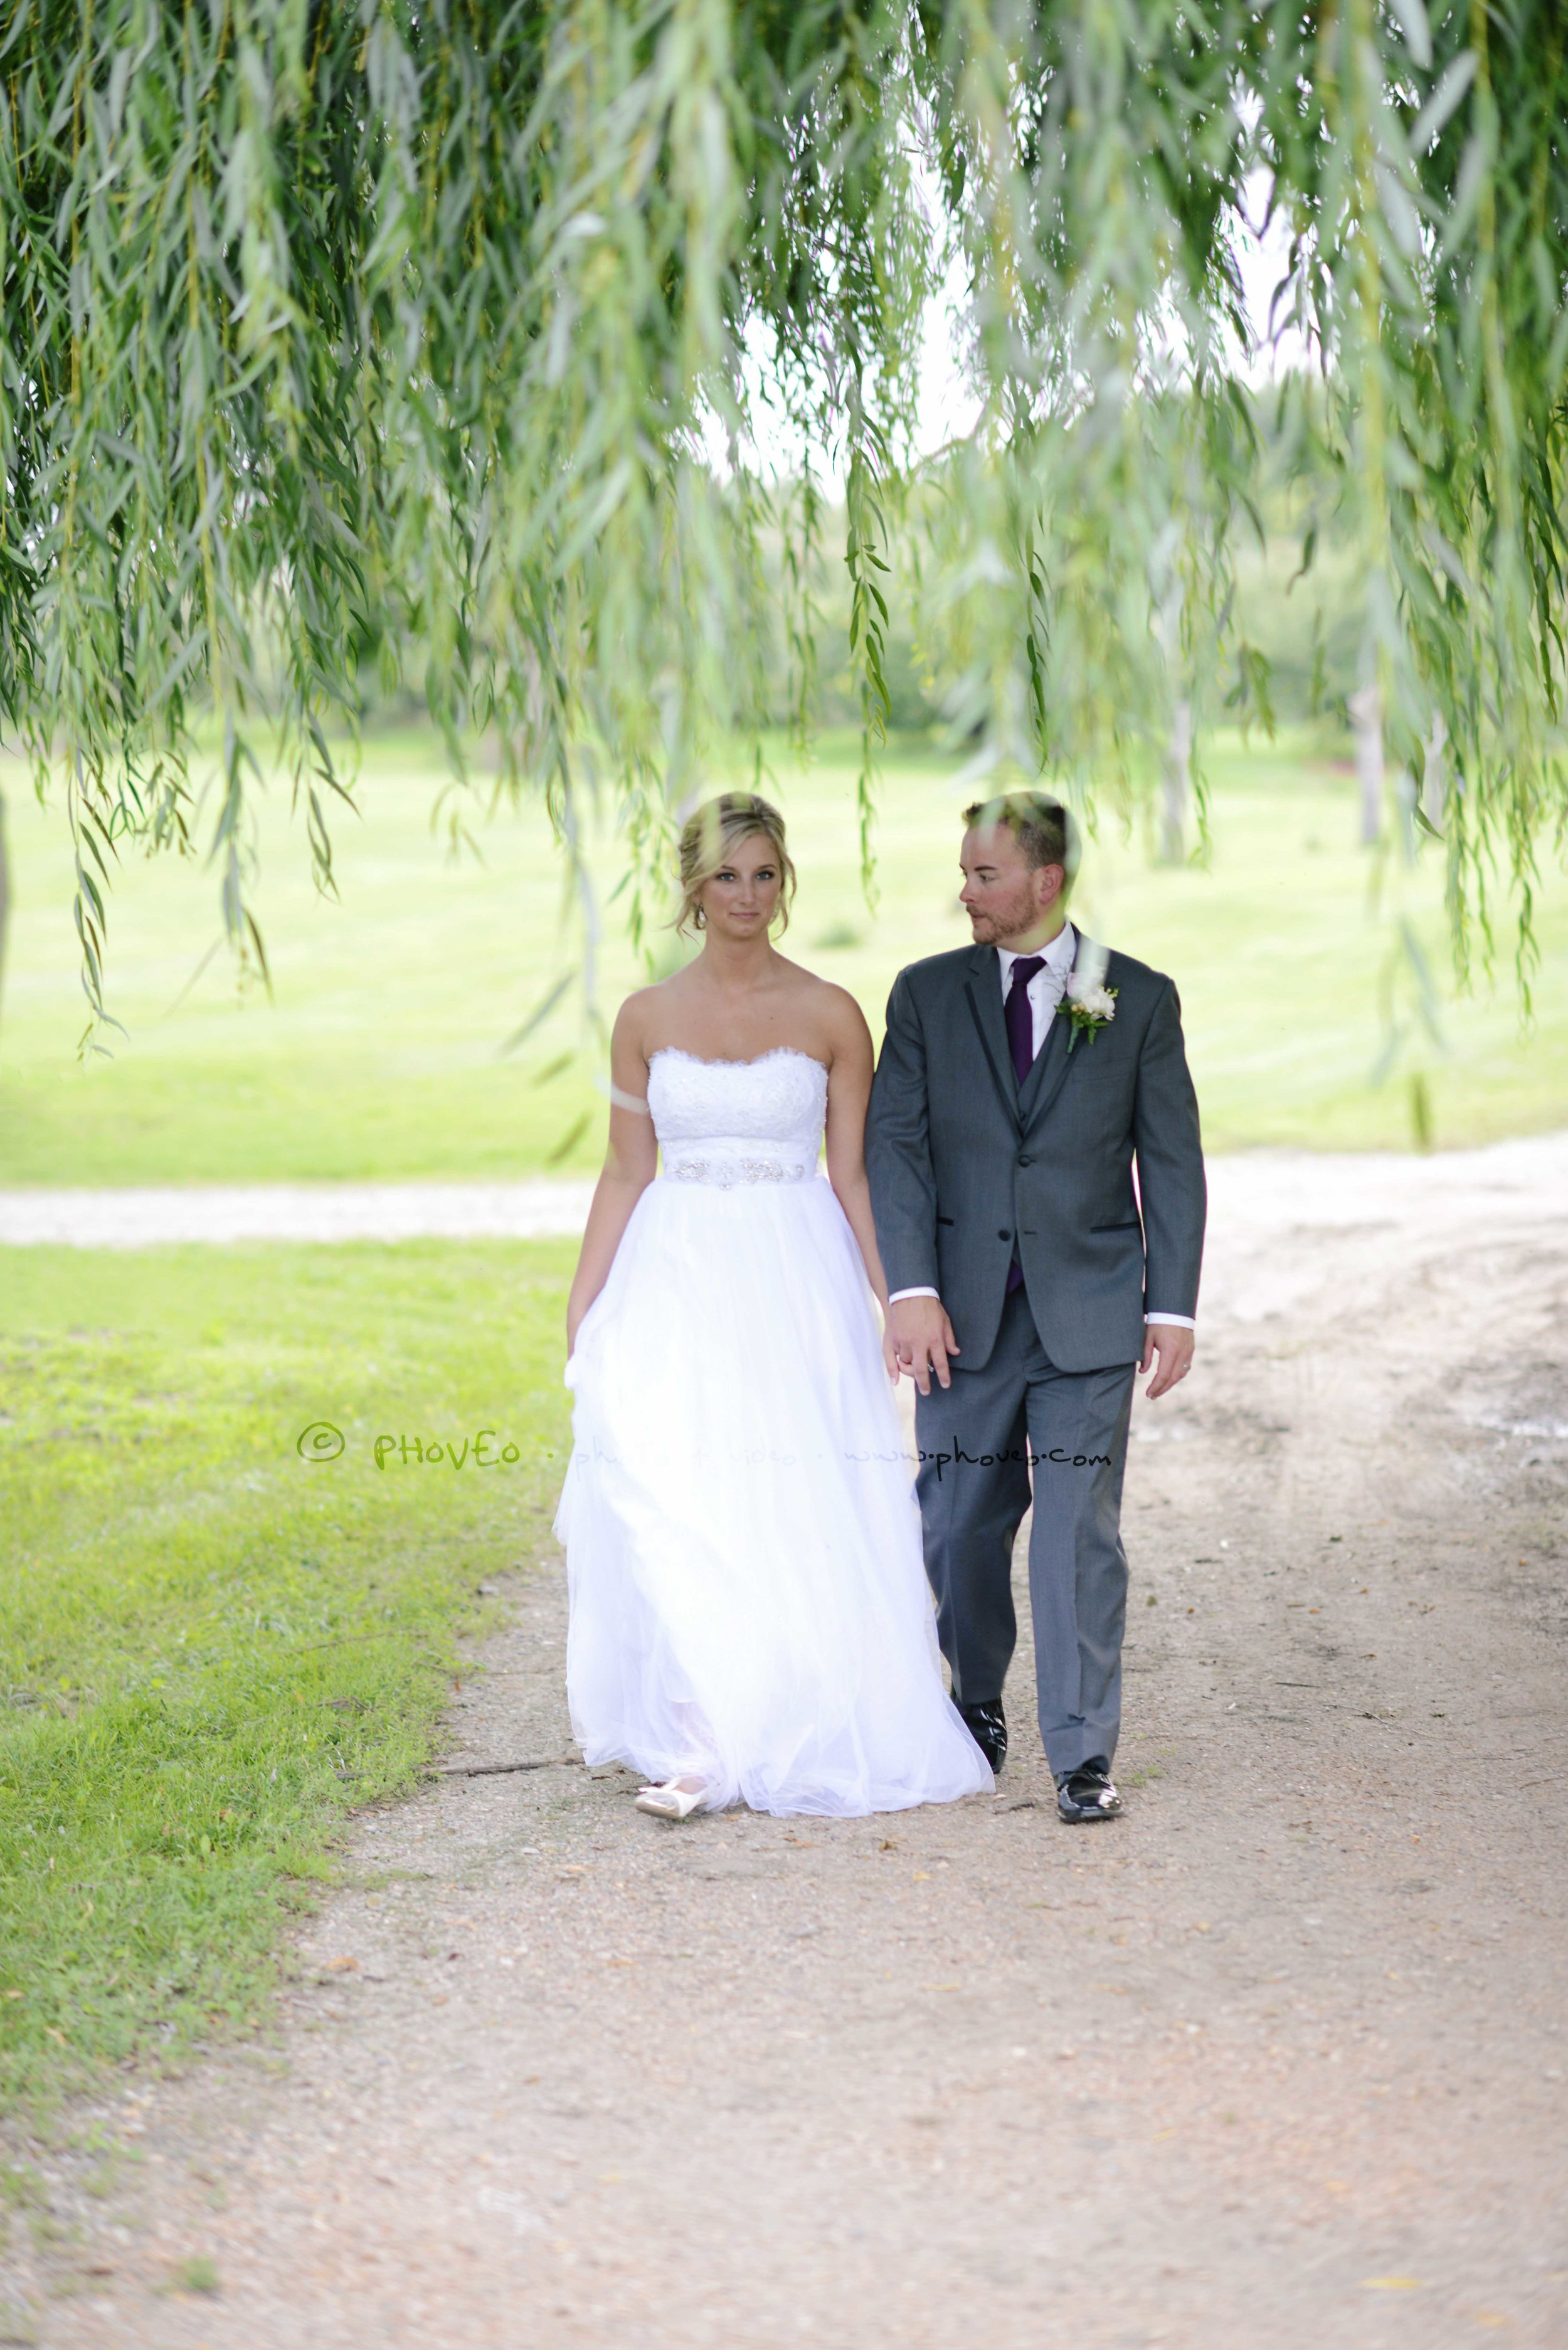 WM_20160826_Katelyn+Tony_90.jpg